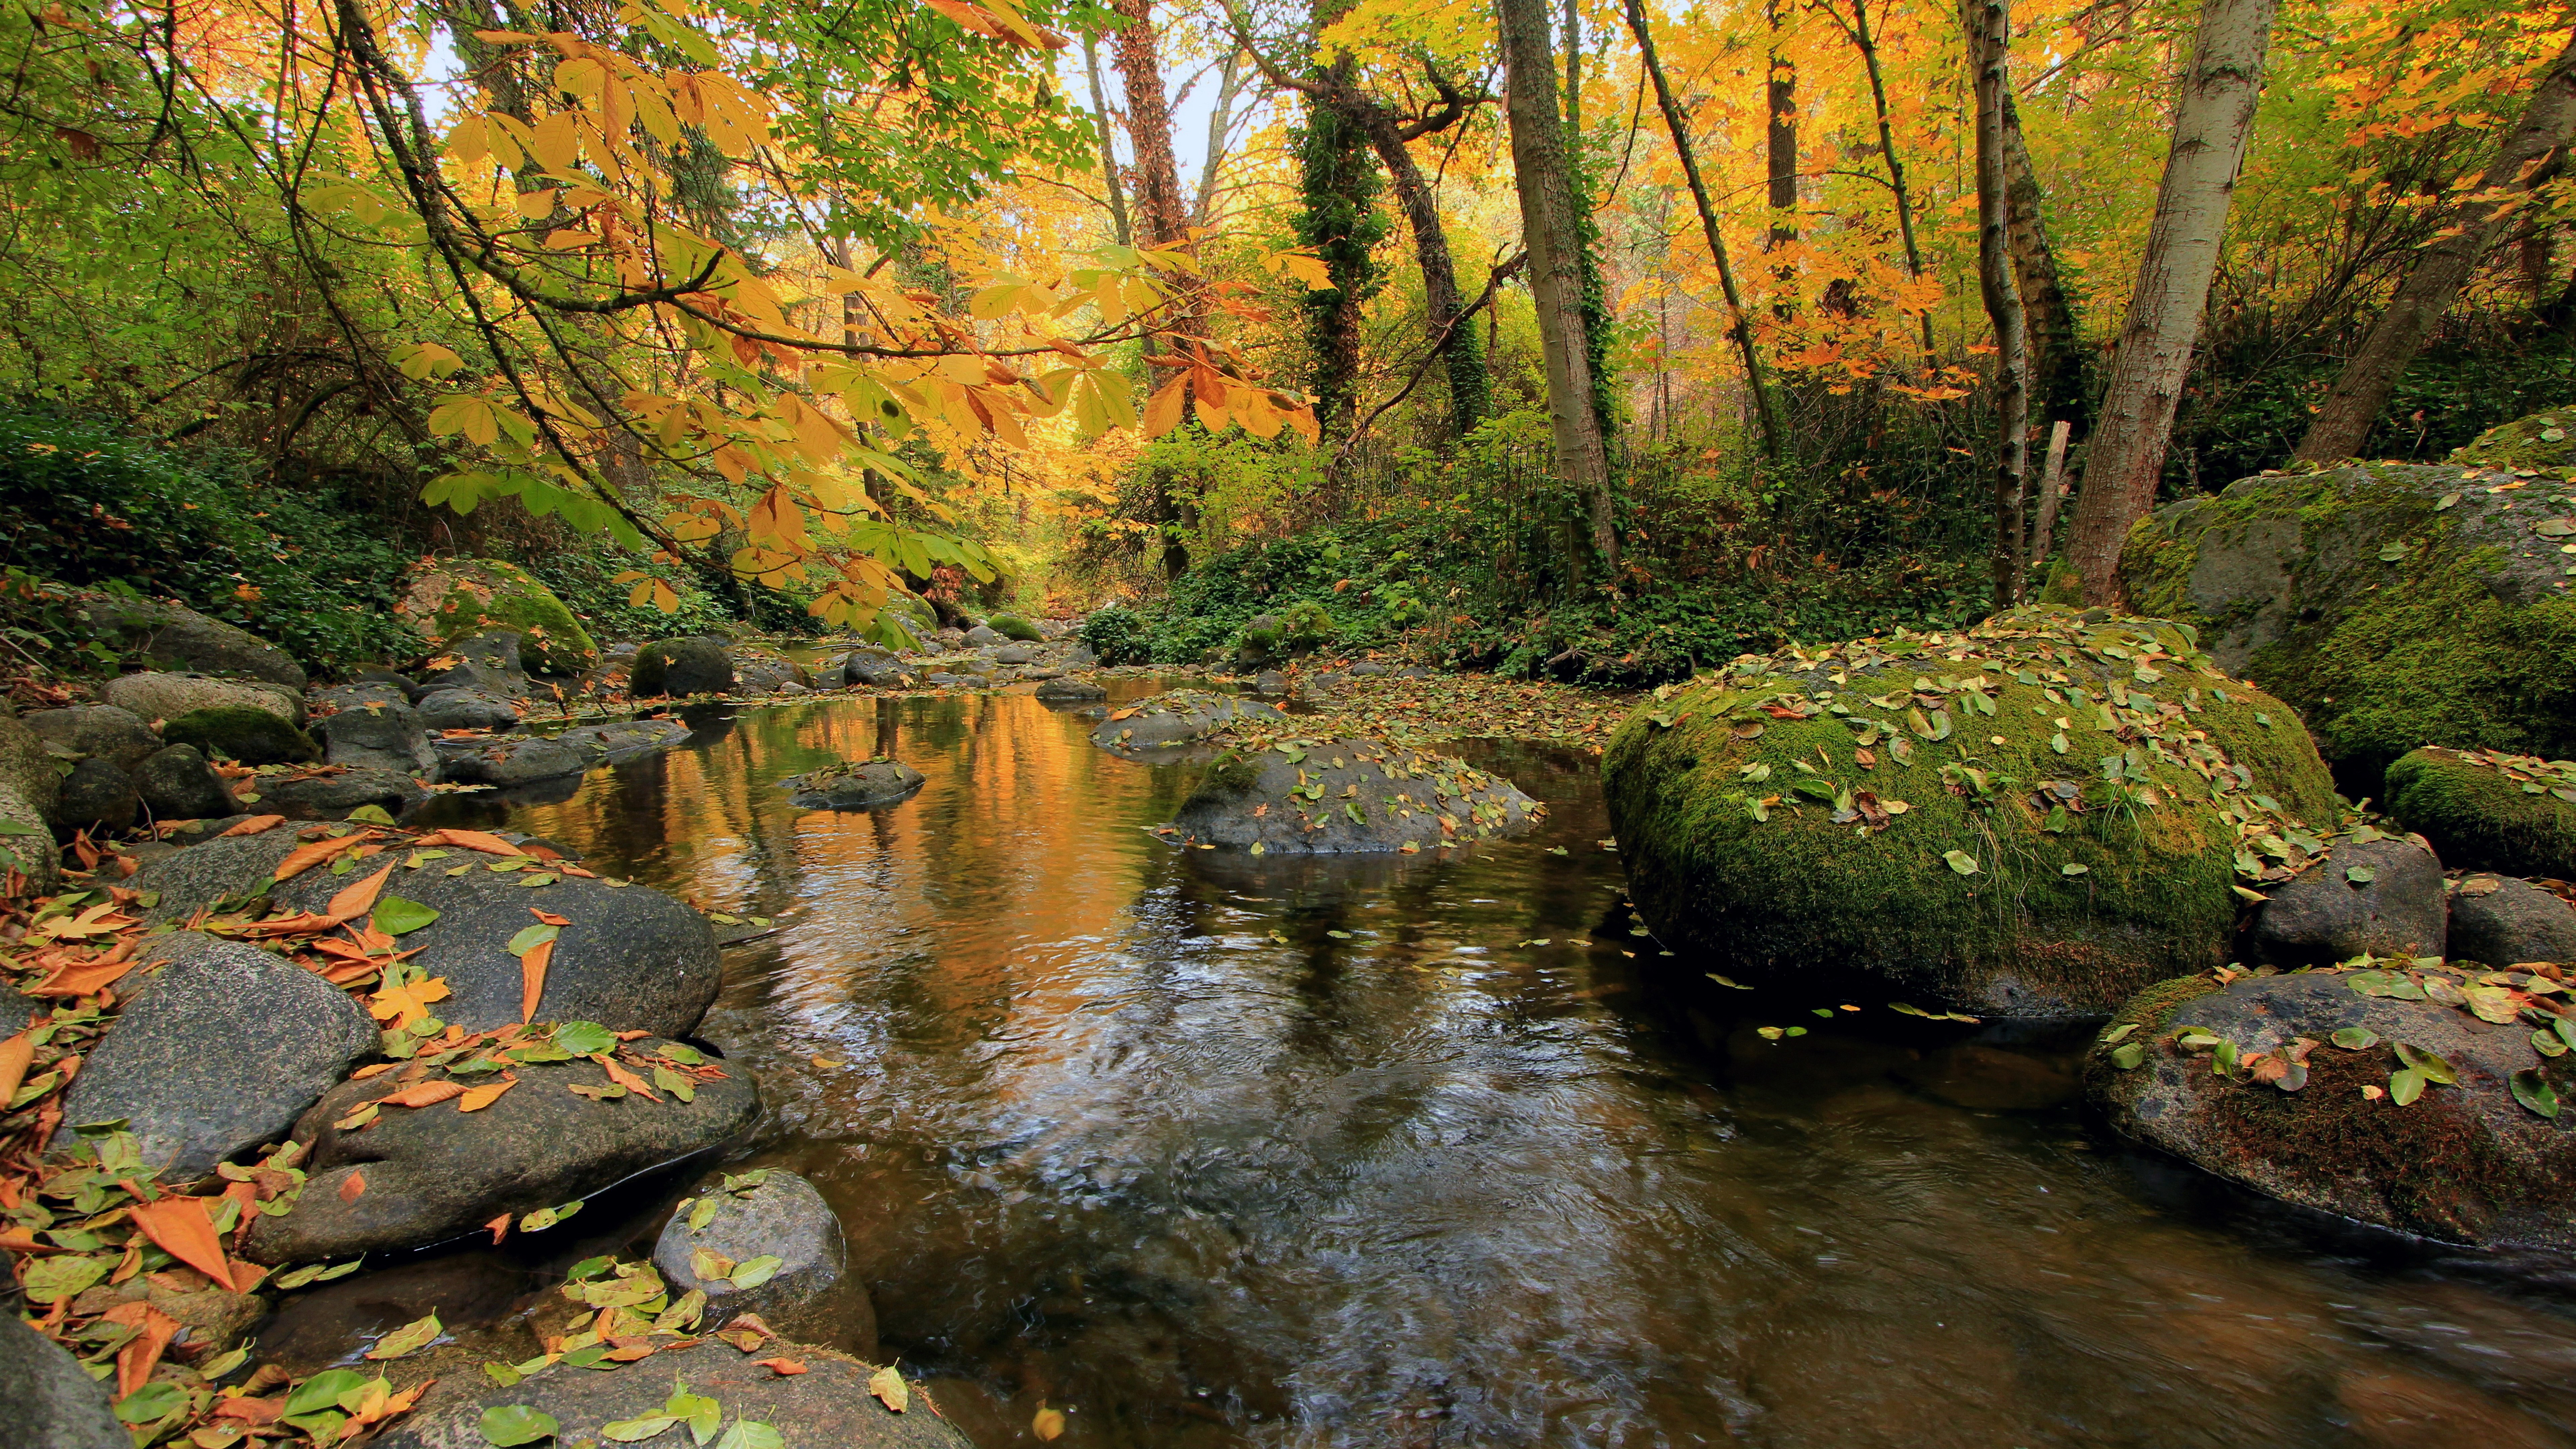 8k hd wallpapers,natural landscape,body of water,nature,stream,riparian zone